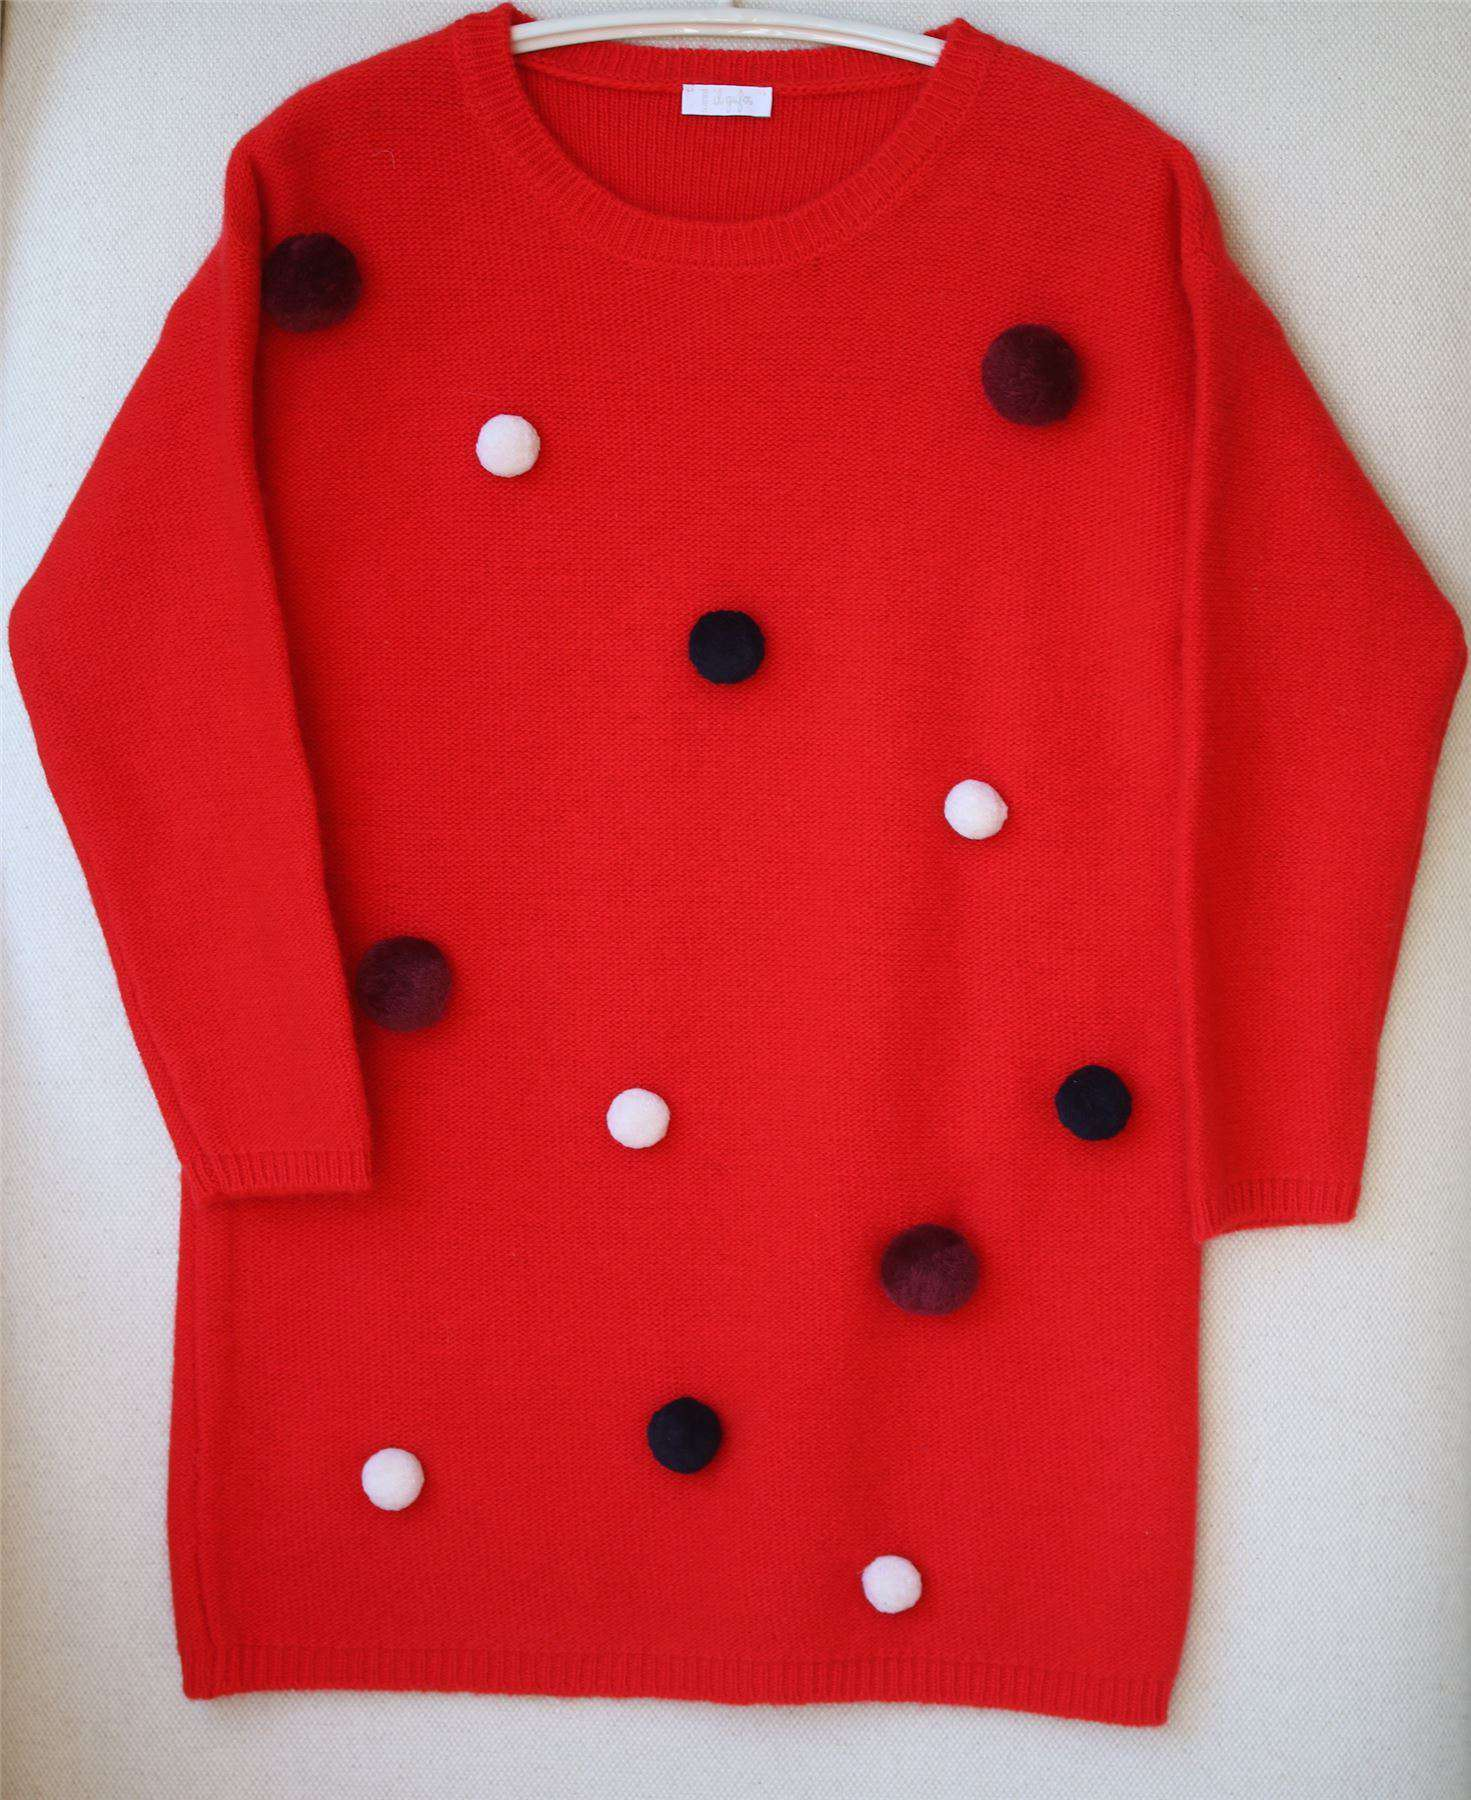 IL GUFO GIRLS RED POM-POM WOOL DRESS 5 YEARS